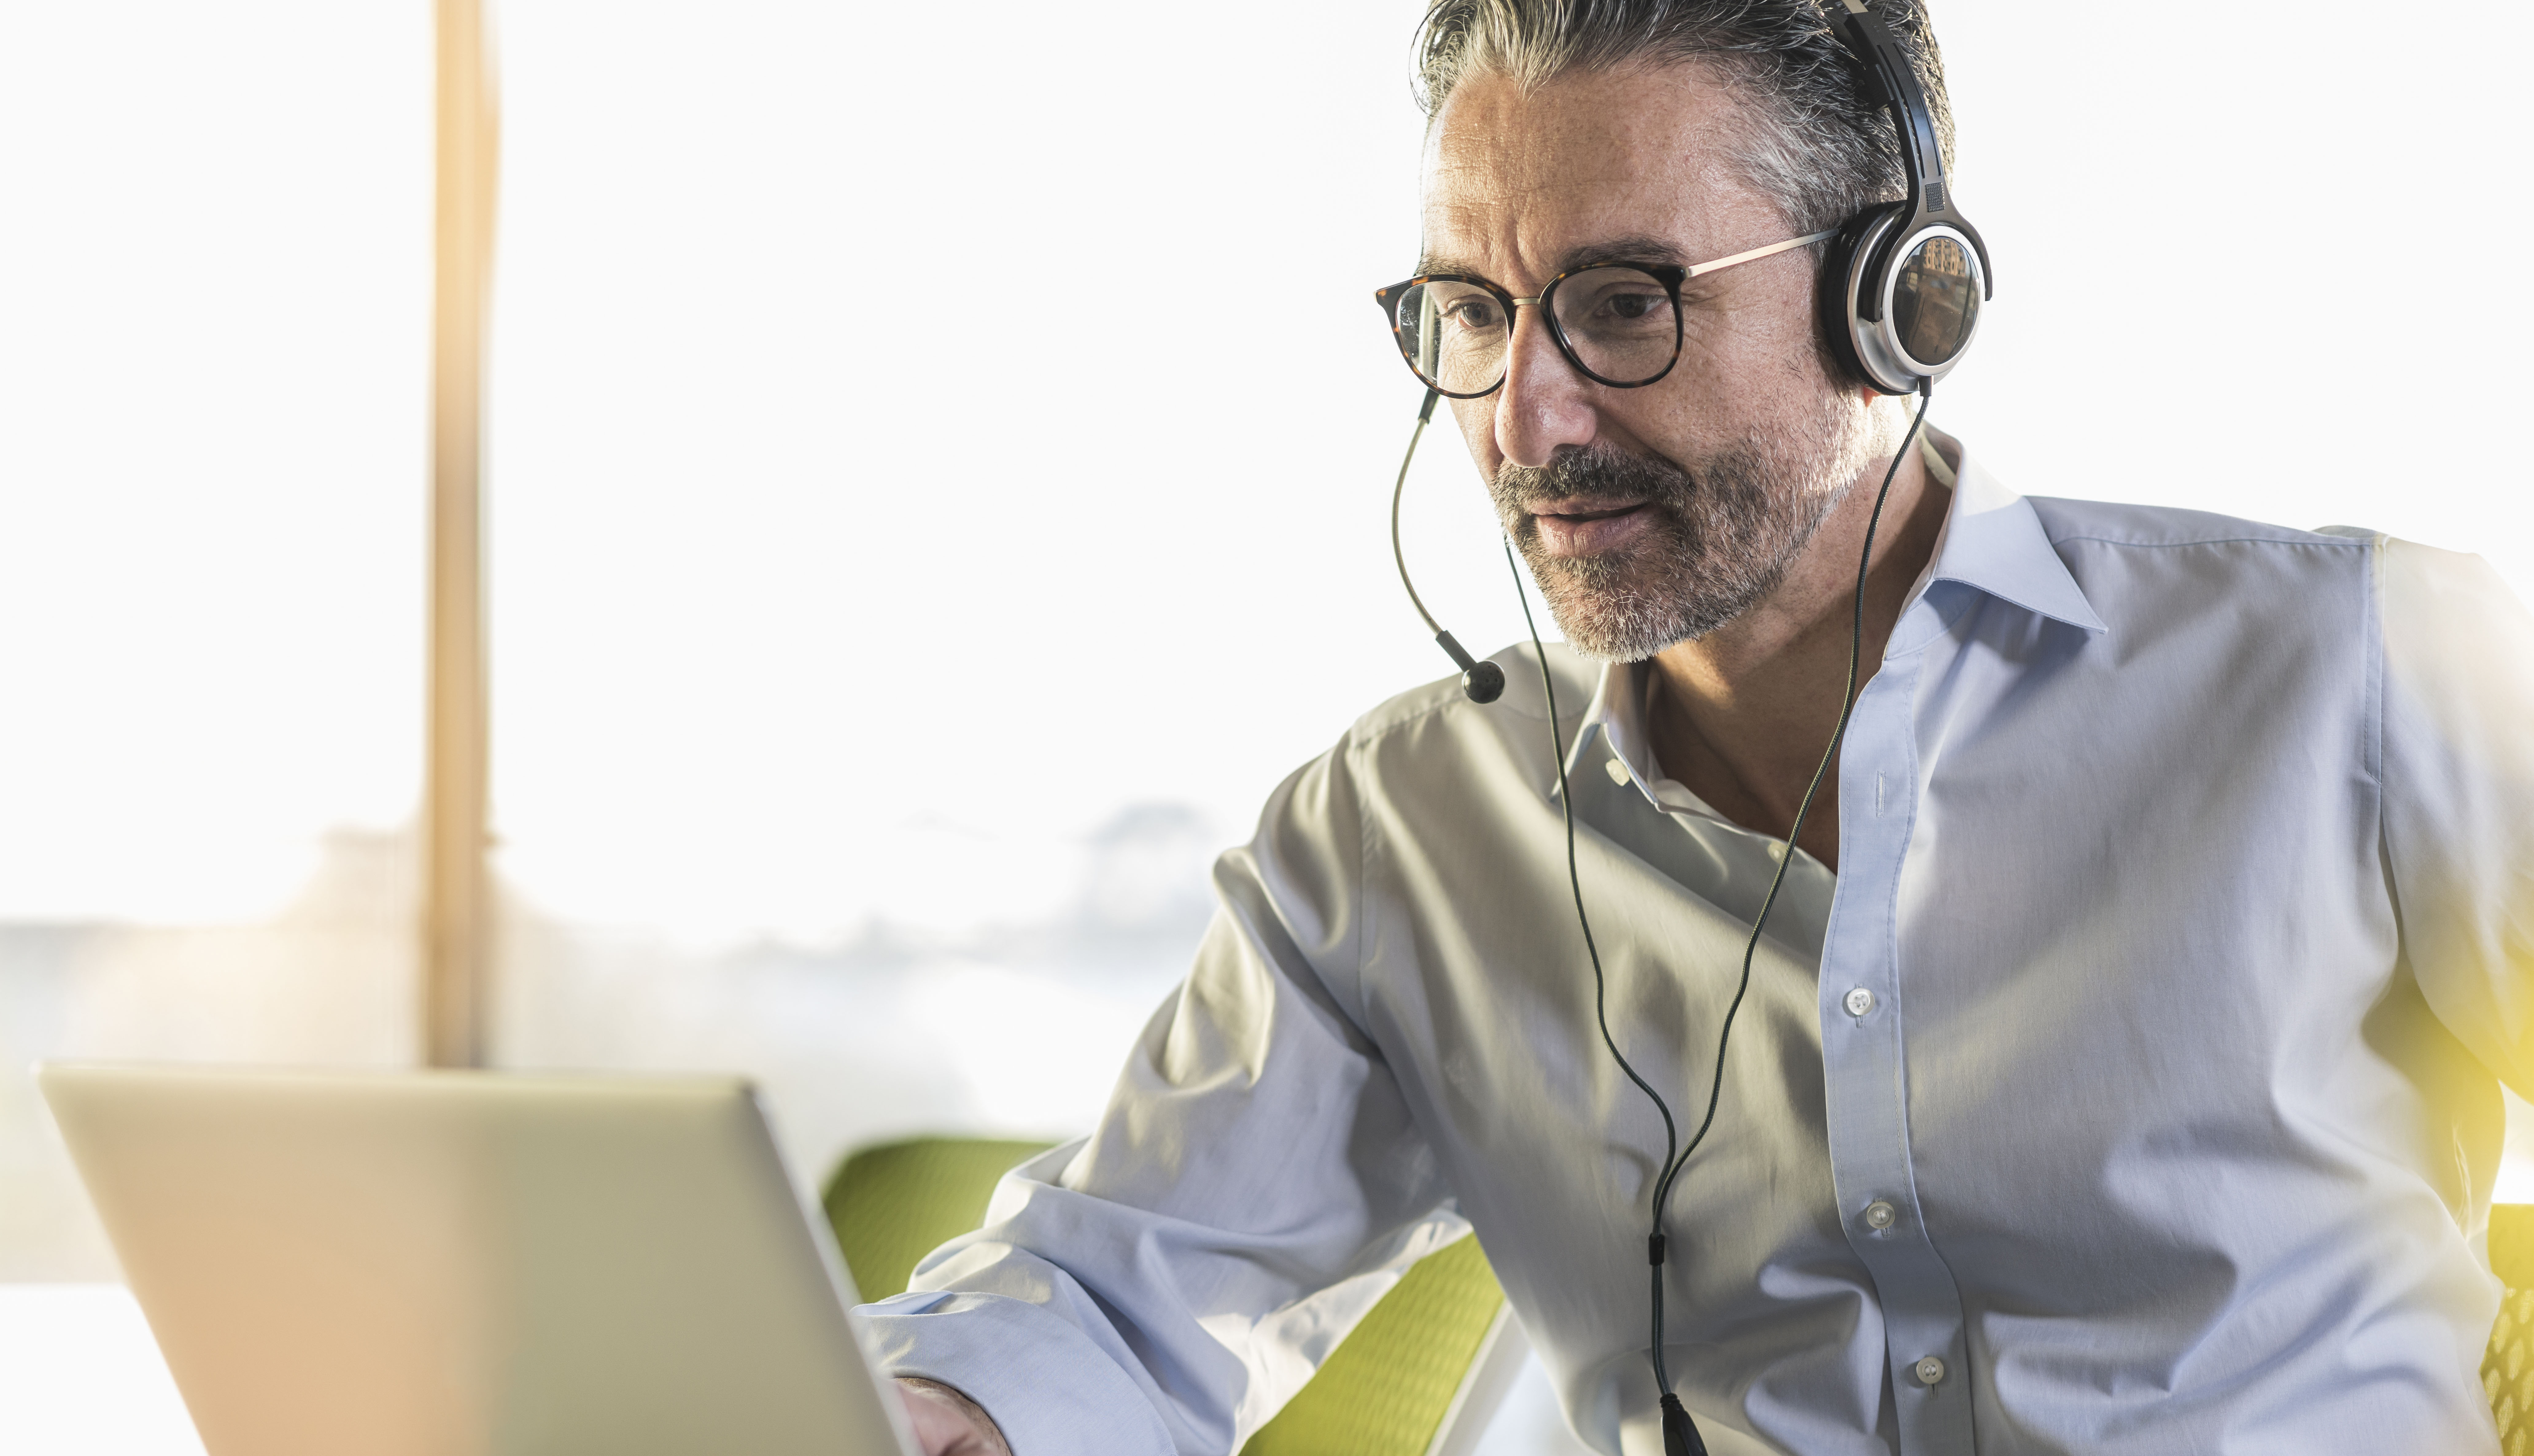 man wearing headset participating in videoconference call on laptop.